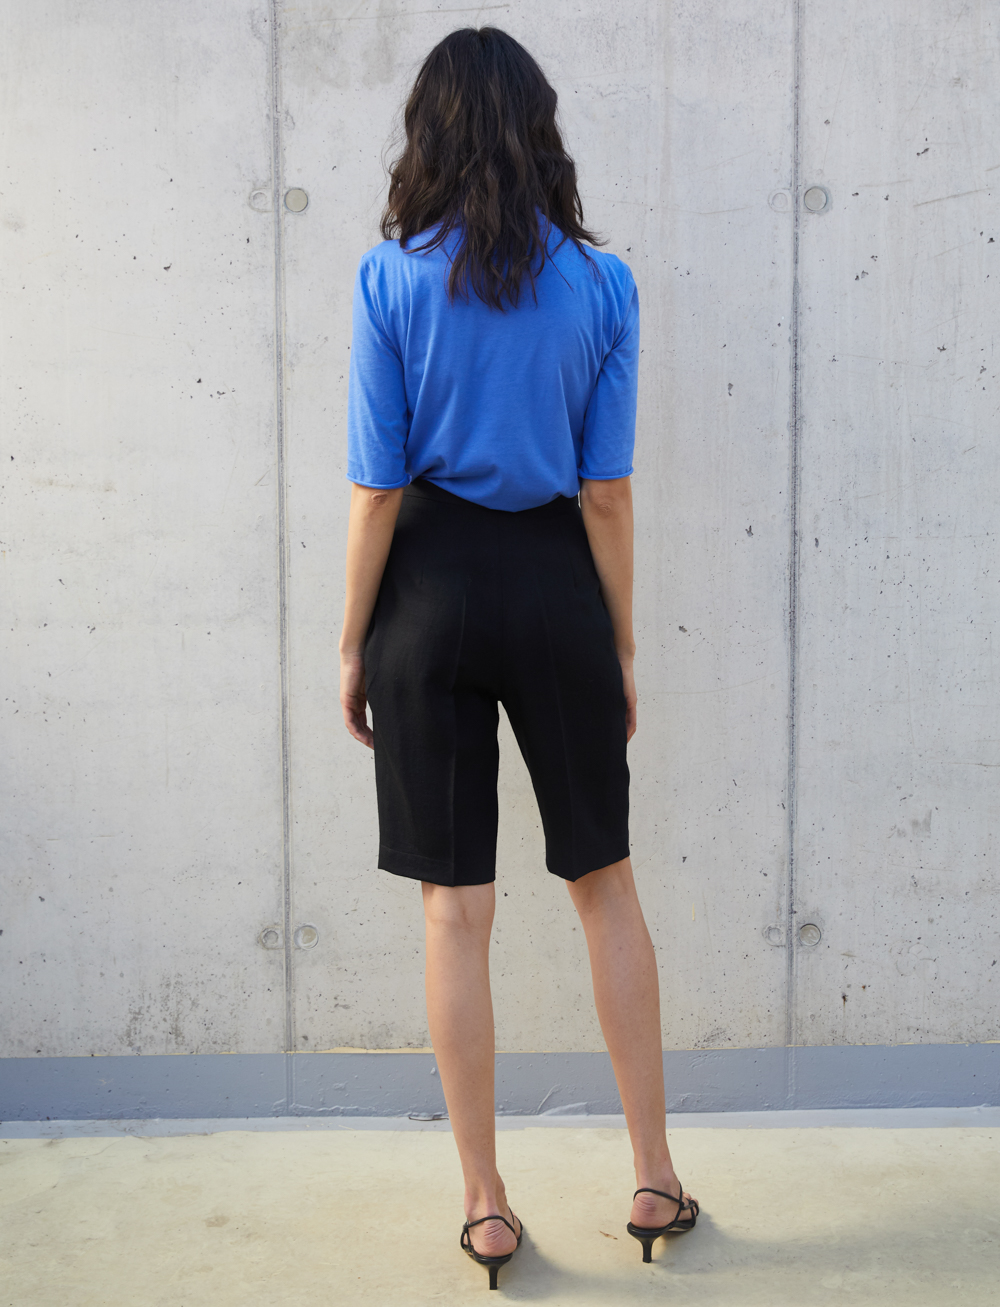 Jacqueline Shorts - Black by Manurí on curated-crowd.com